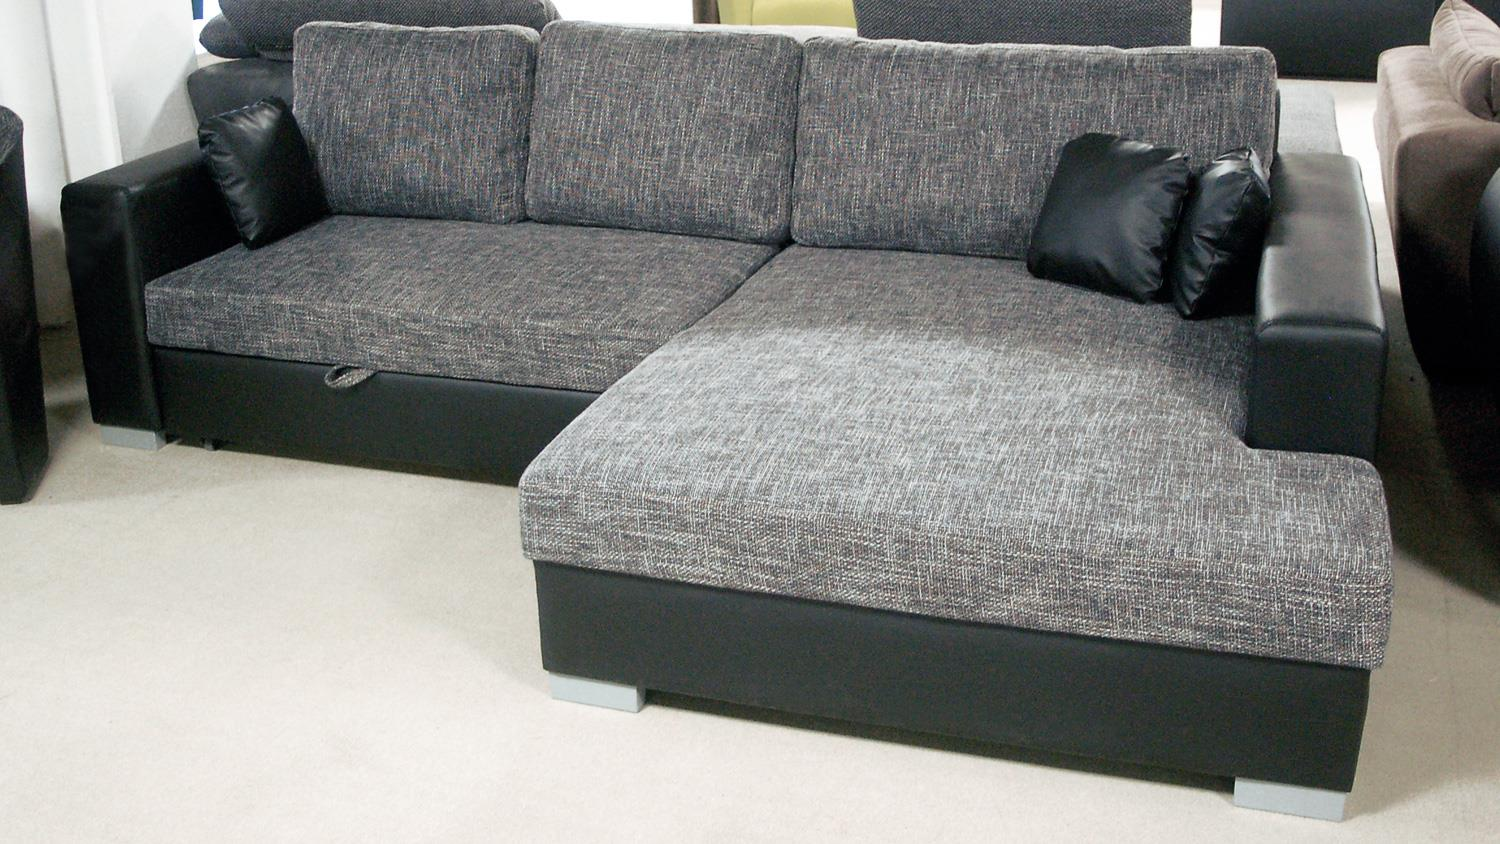 ecksofa flamenco schlaffunktion schwarz grau ottomane rechts. Black Bedroom Furniture Sets. Home Design Ideas